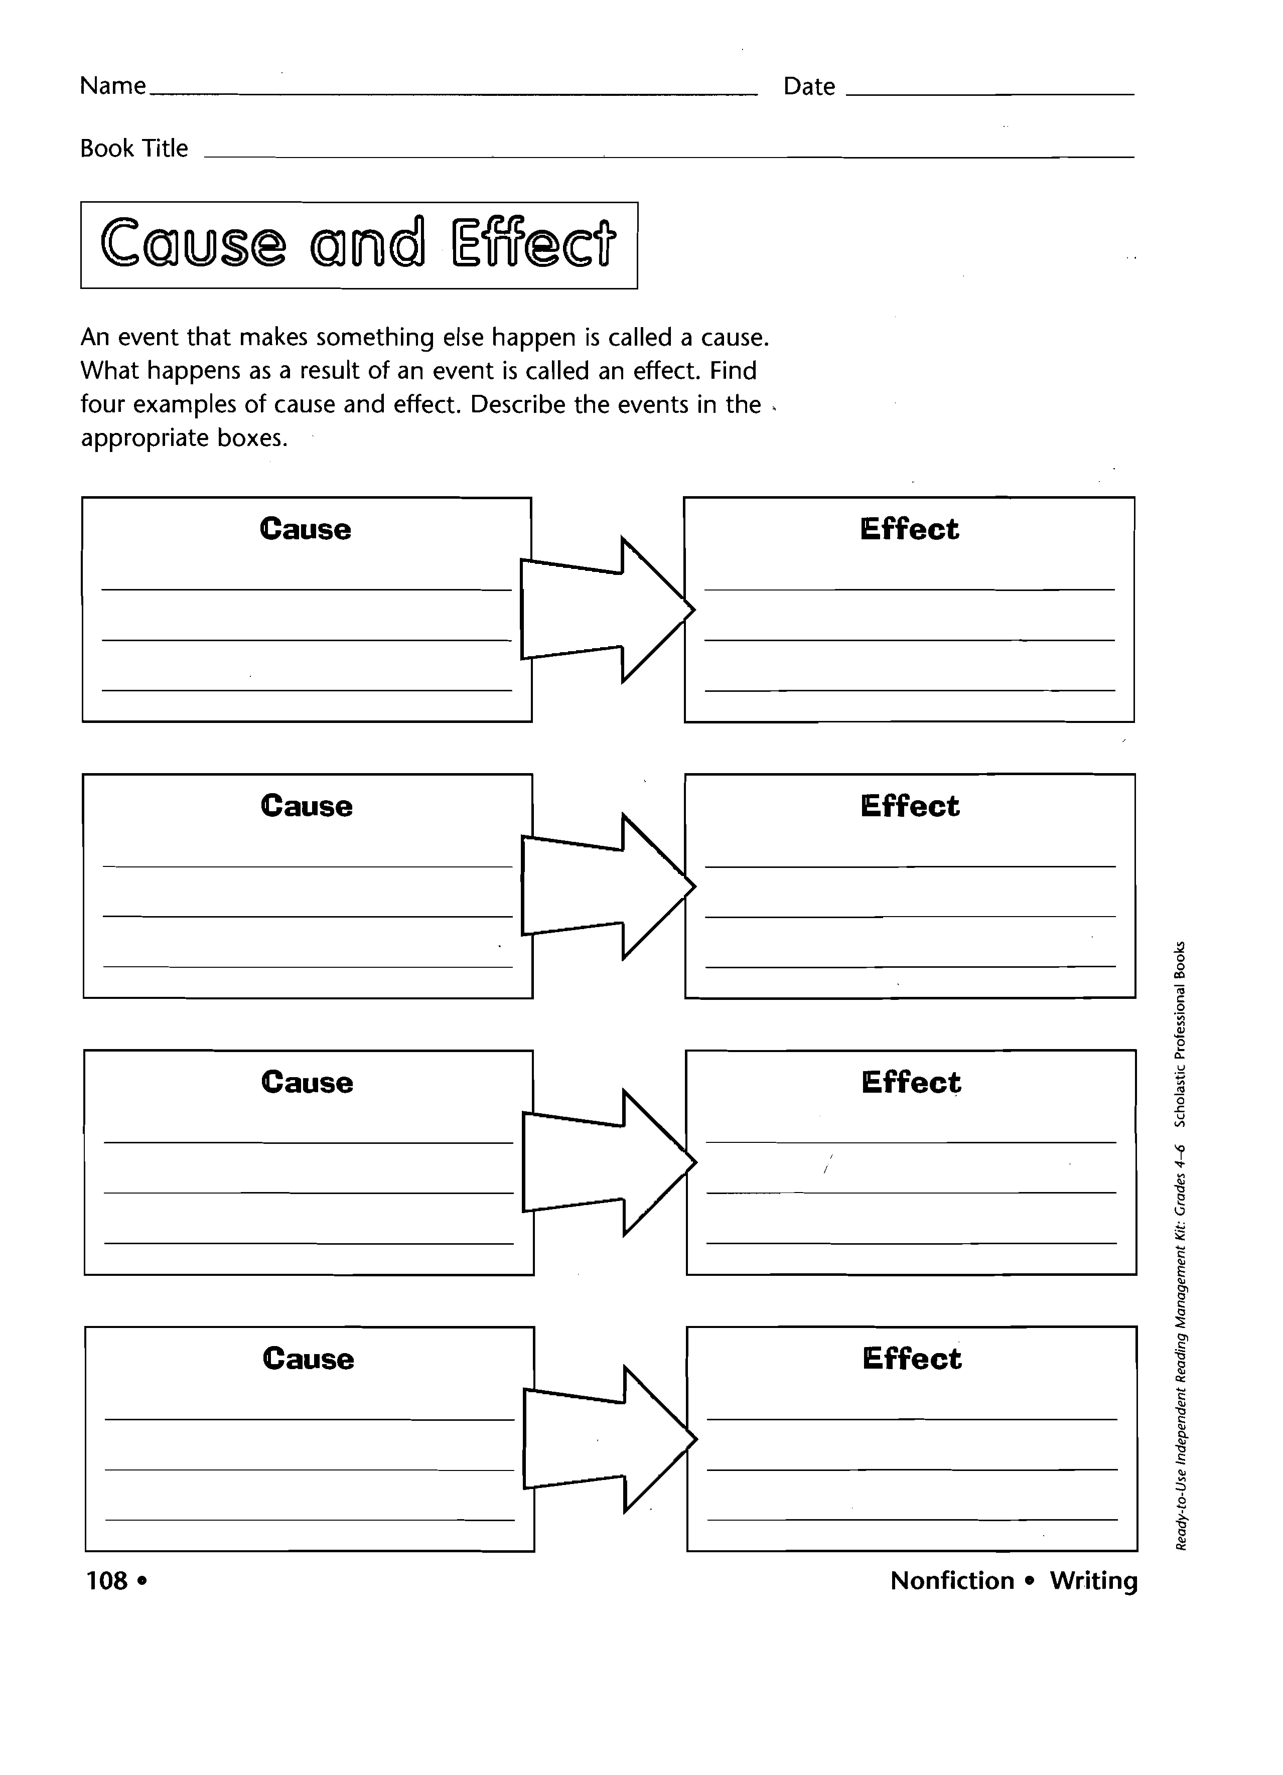 photograph relating to Cause and Effect Graphic Organizer Printable named Image Organizers Printable Printable Induce Effects